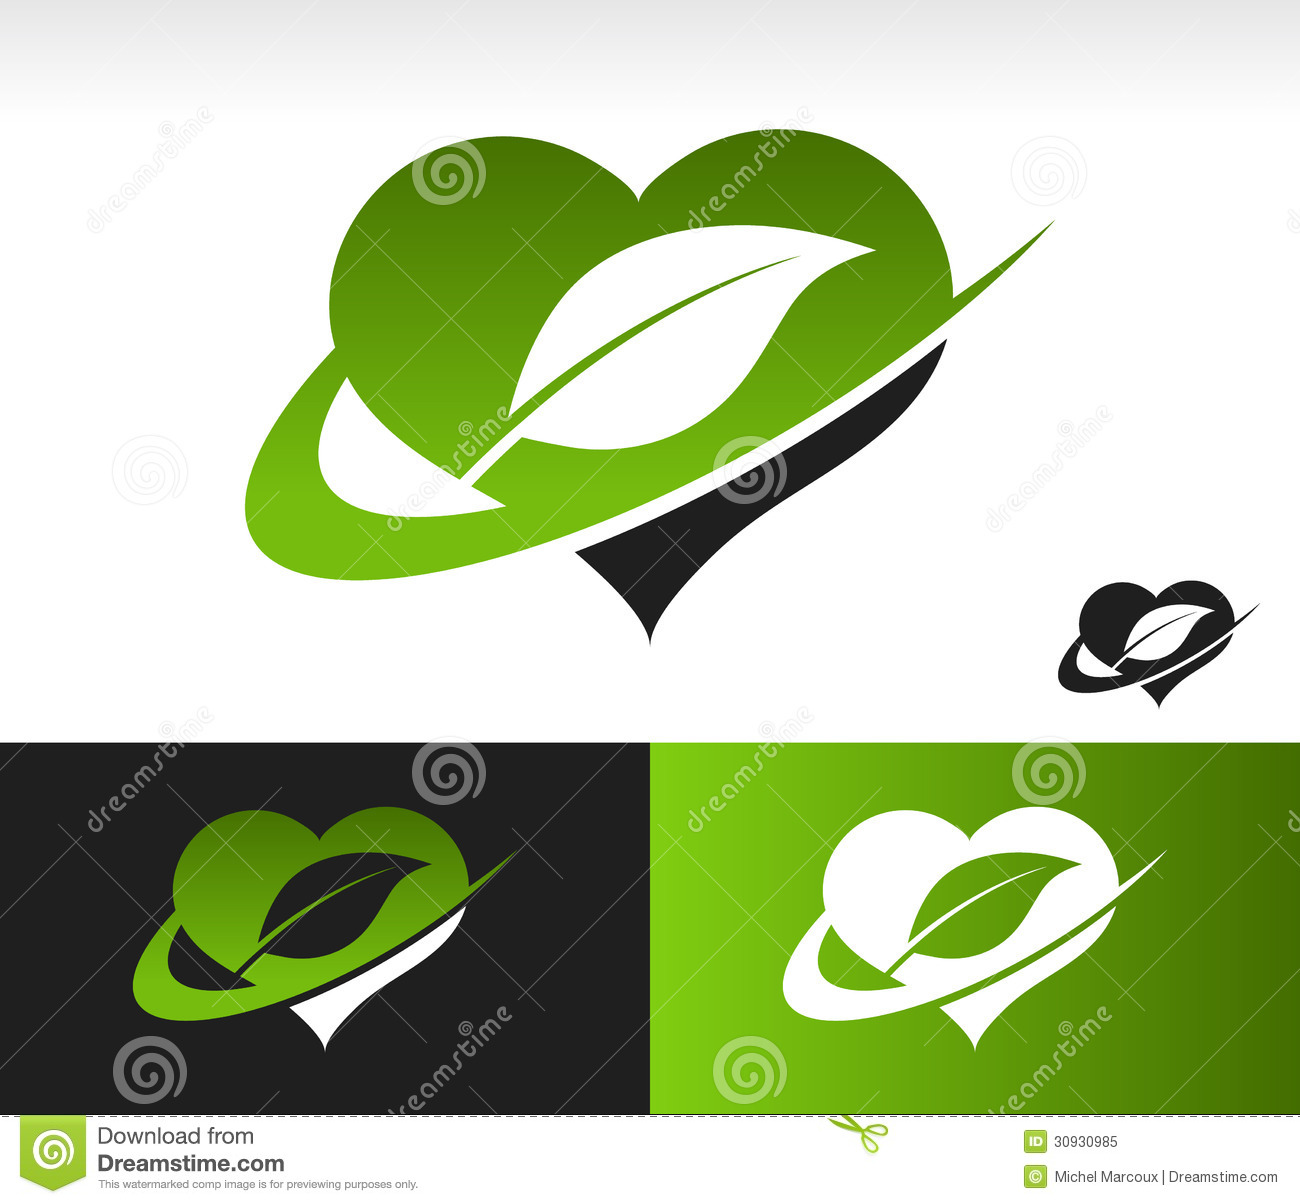 Swoosh green heart with leaf symbol stock image image of friendly royalty free stock photo biocorpaavc Gallery